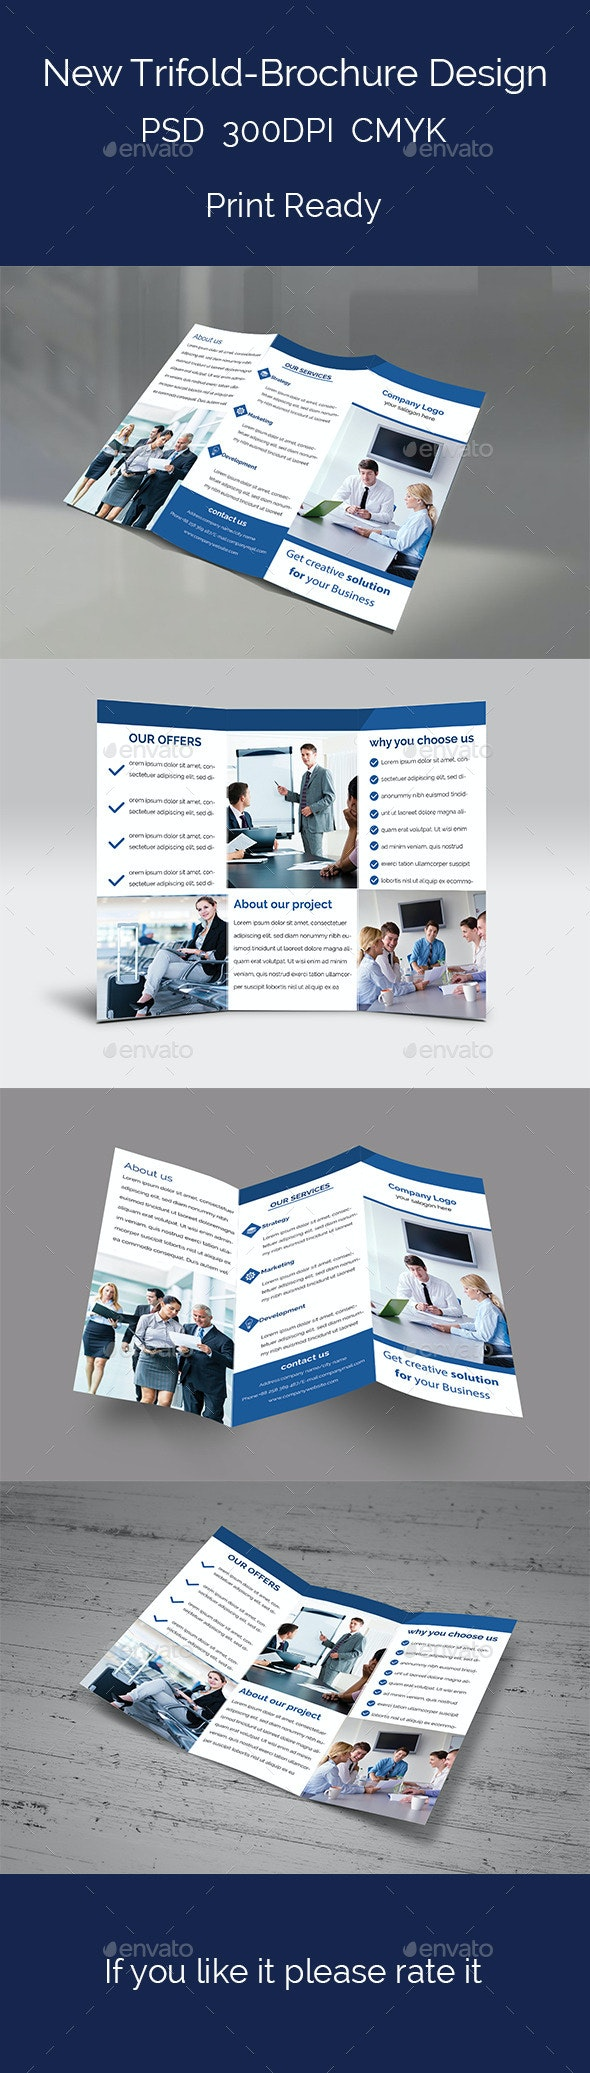 New Trifold-Brochure Design - Brochures Print Templates